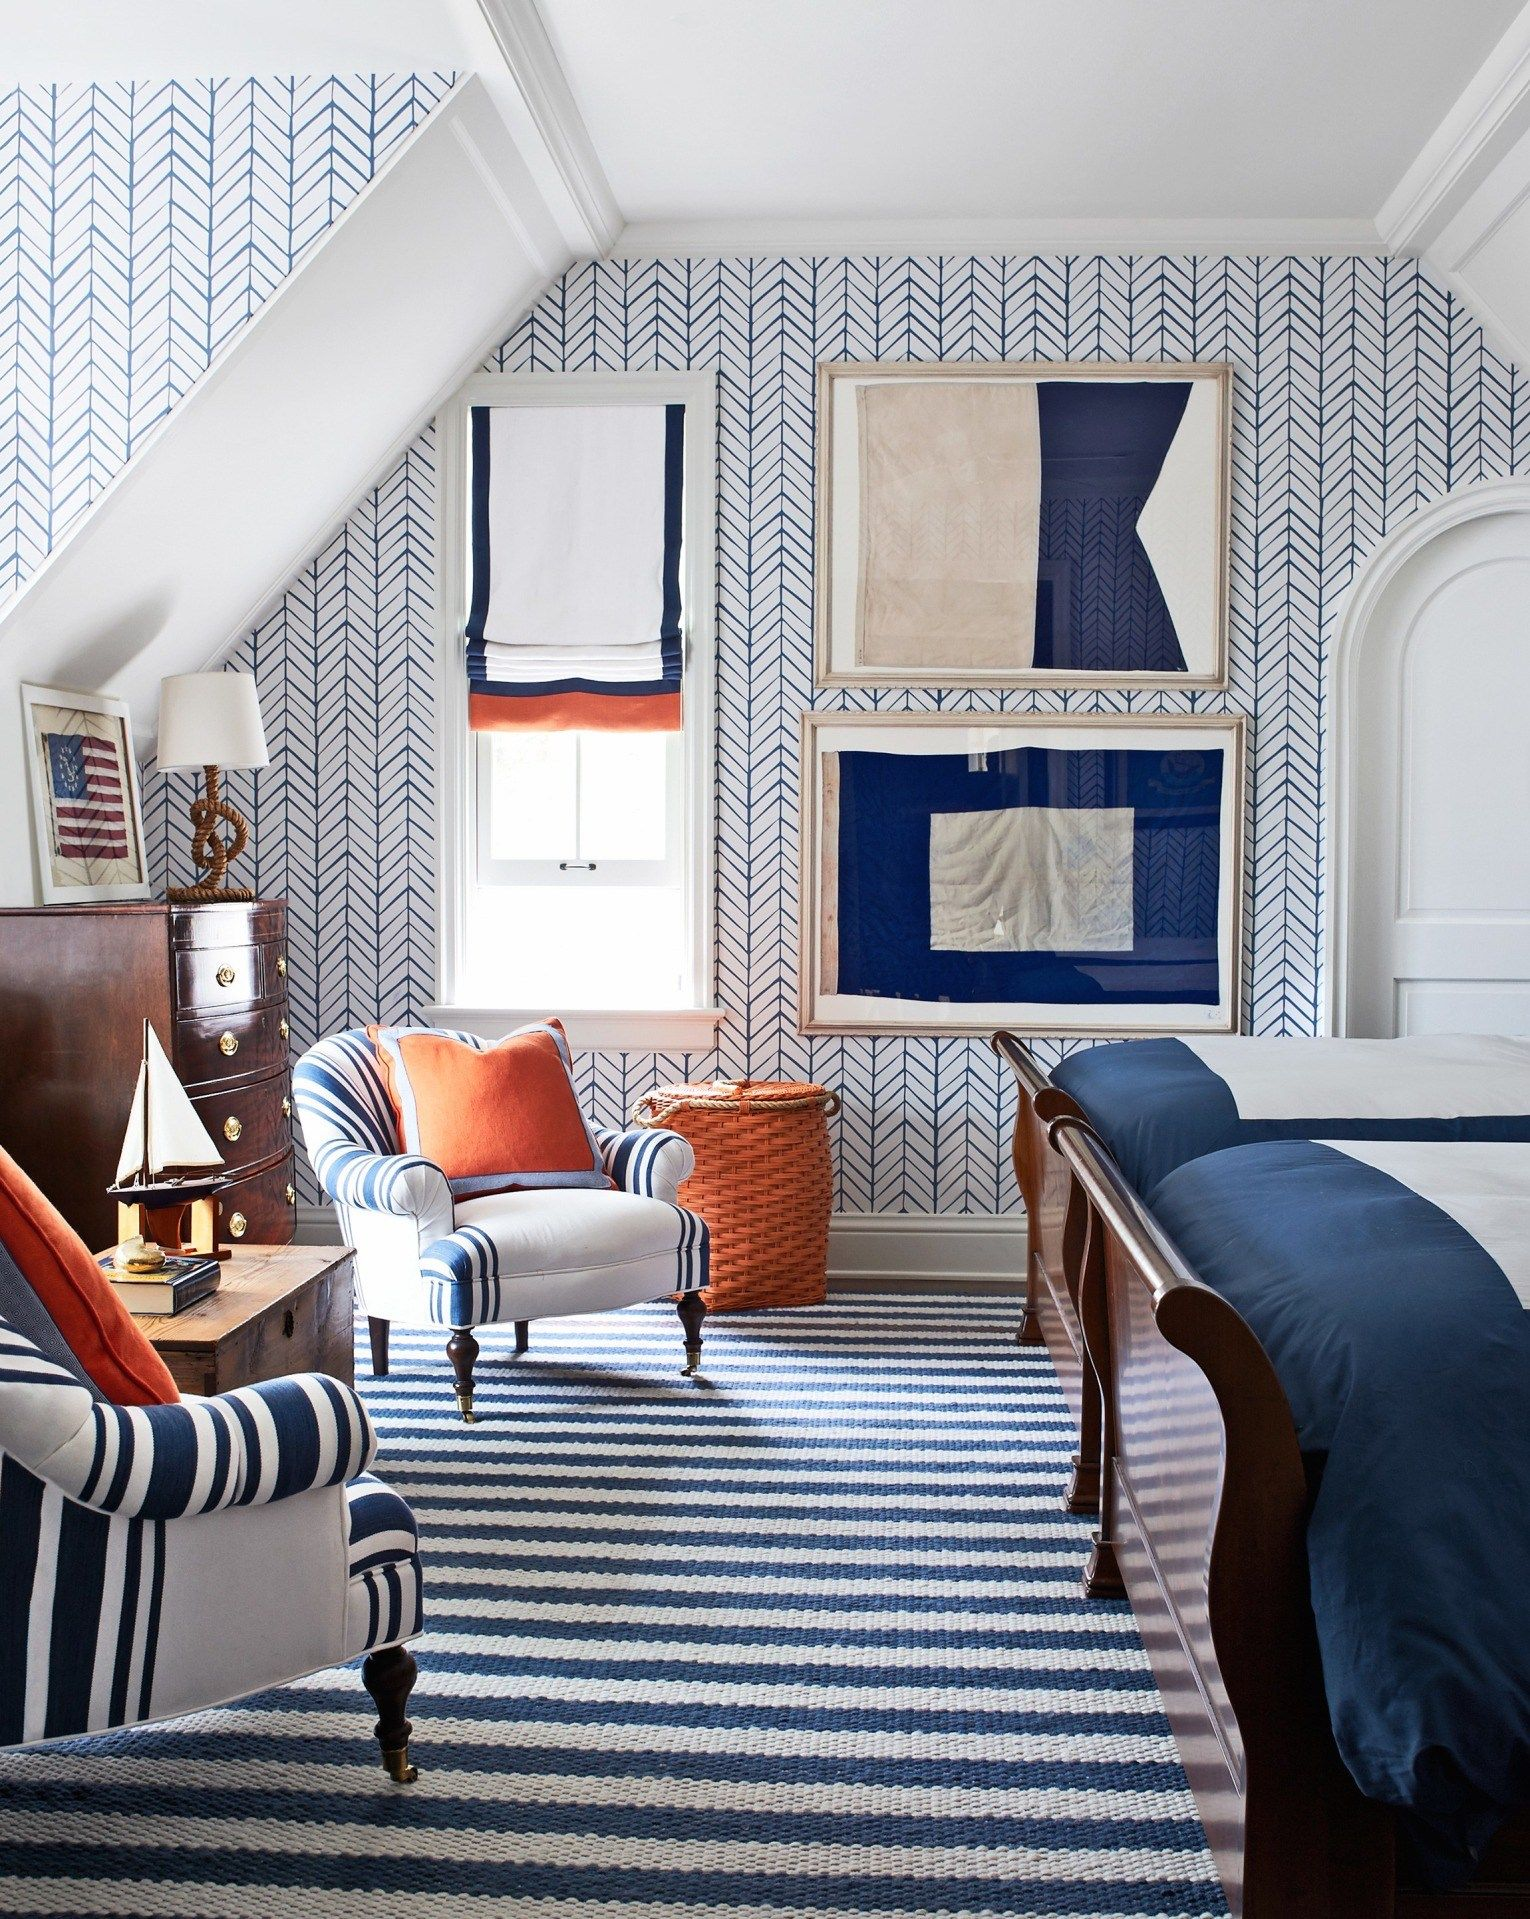 A Texture Cobalt Blue And White Striped Rug Adds Flair